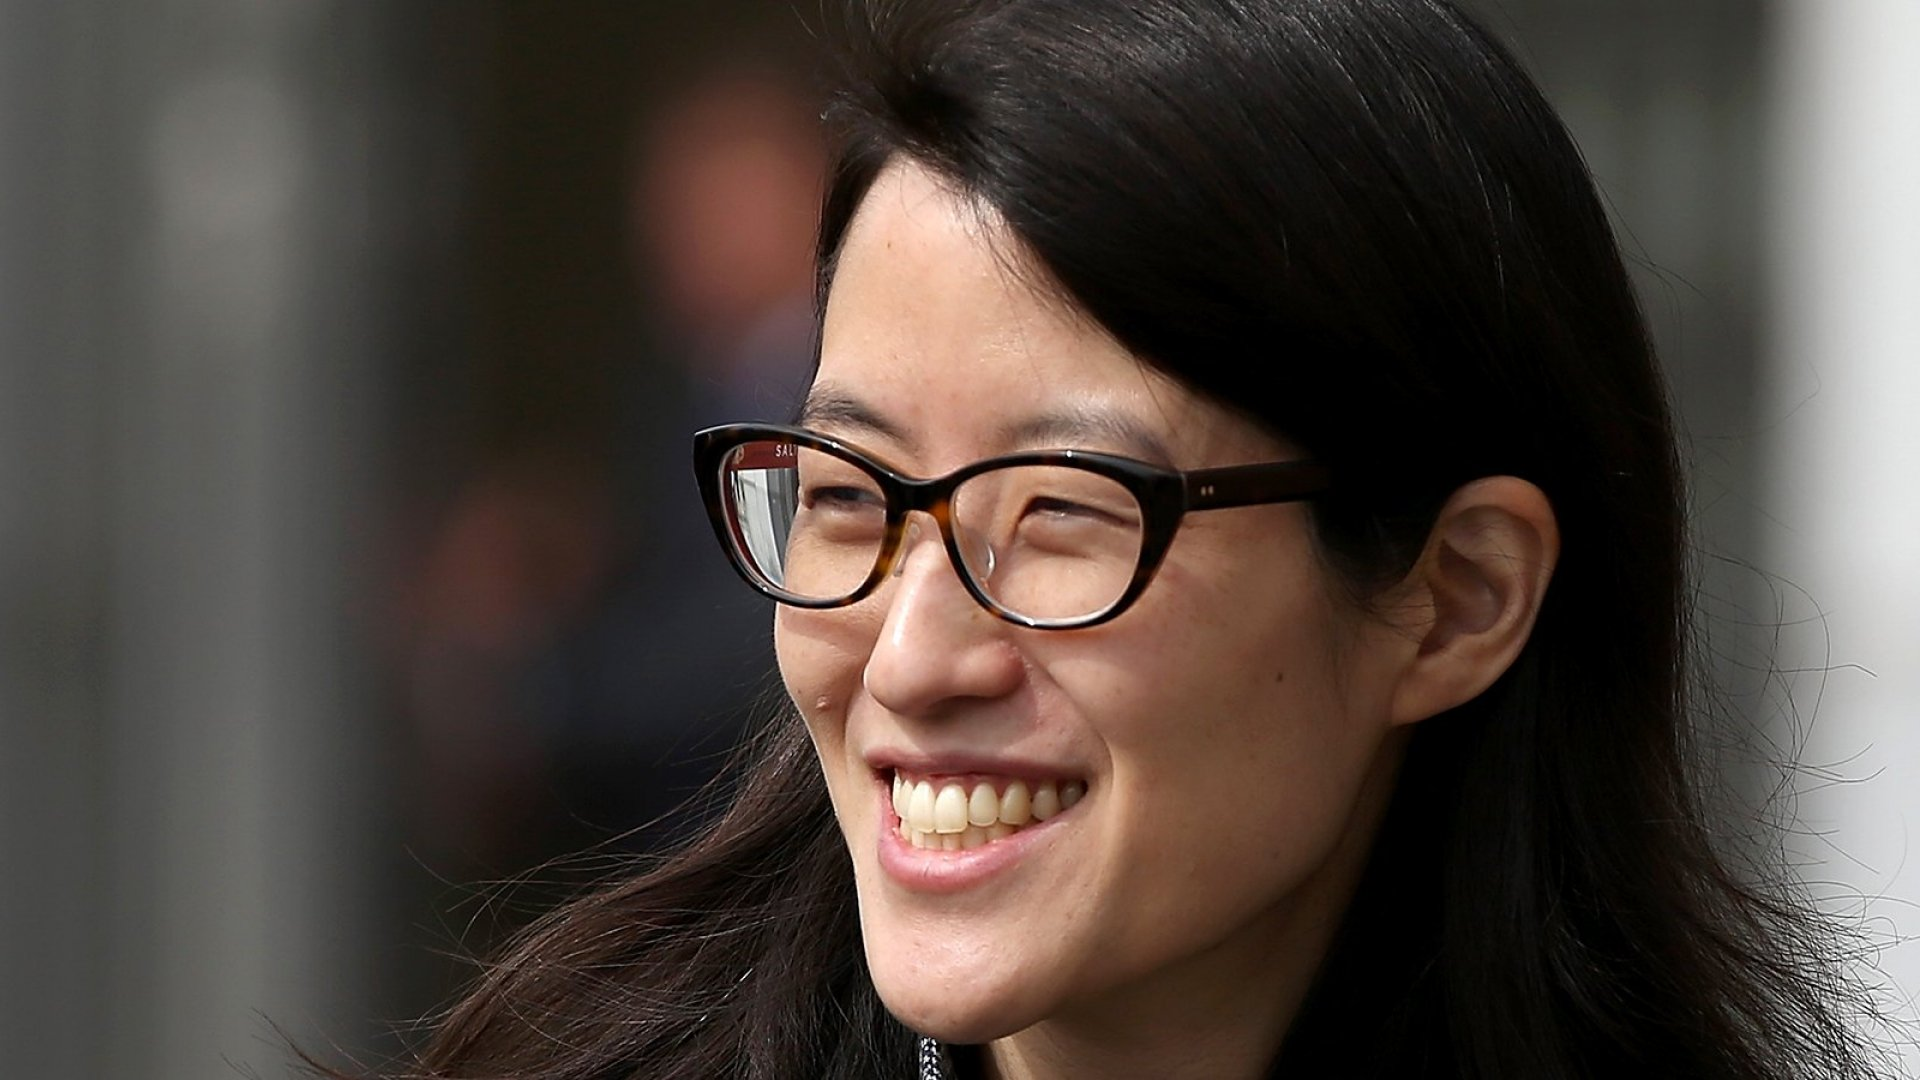 Still Optimistic, Ellen Pao Roots For 'Humans Over the Trolls'